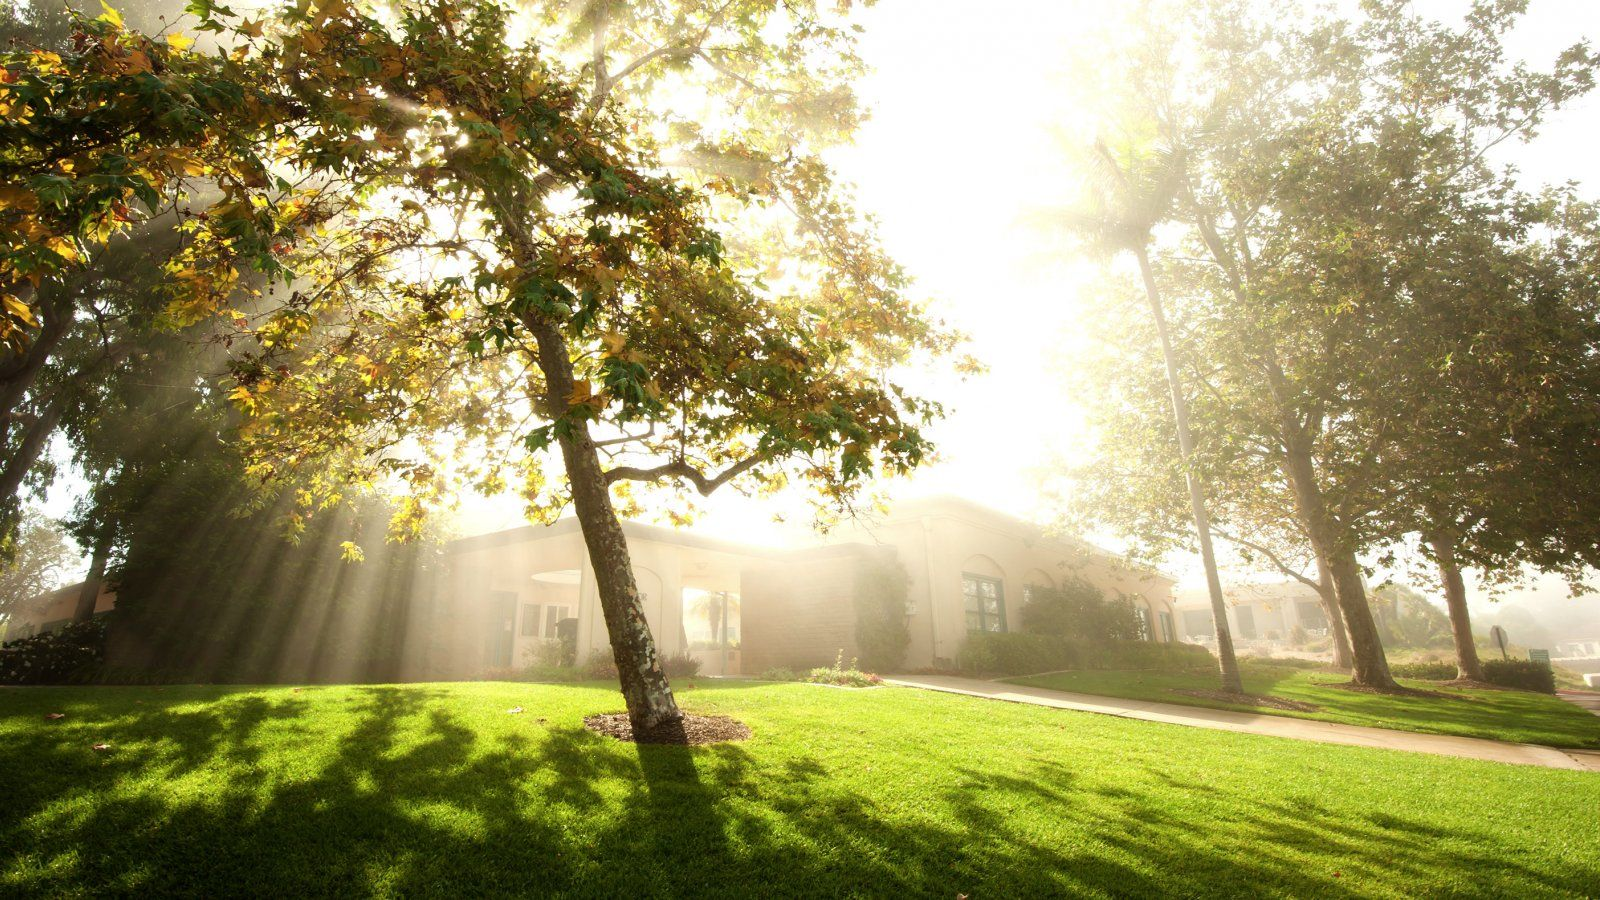 The sun begins to shine through the fog on campus.